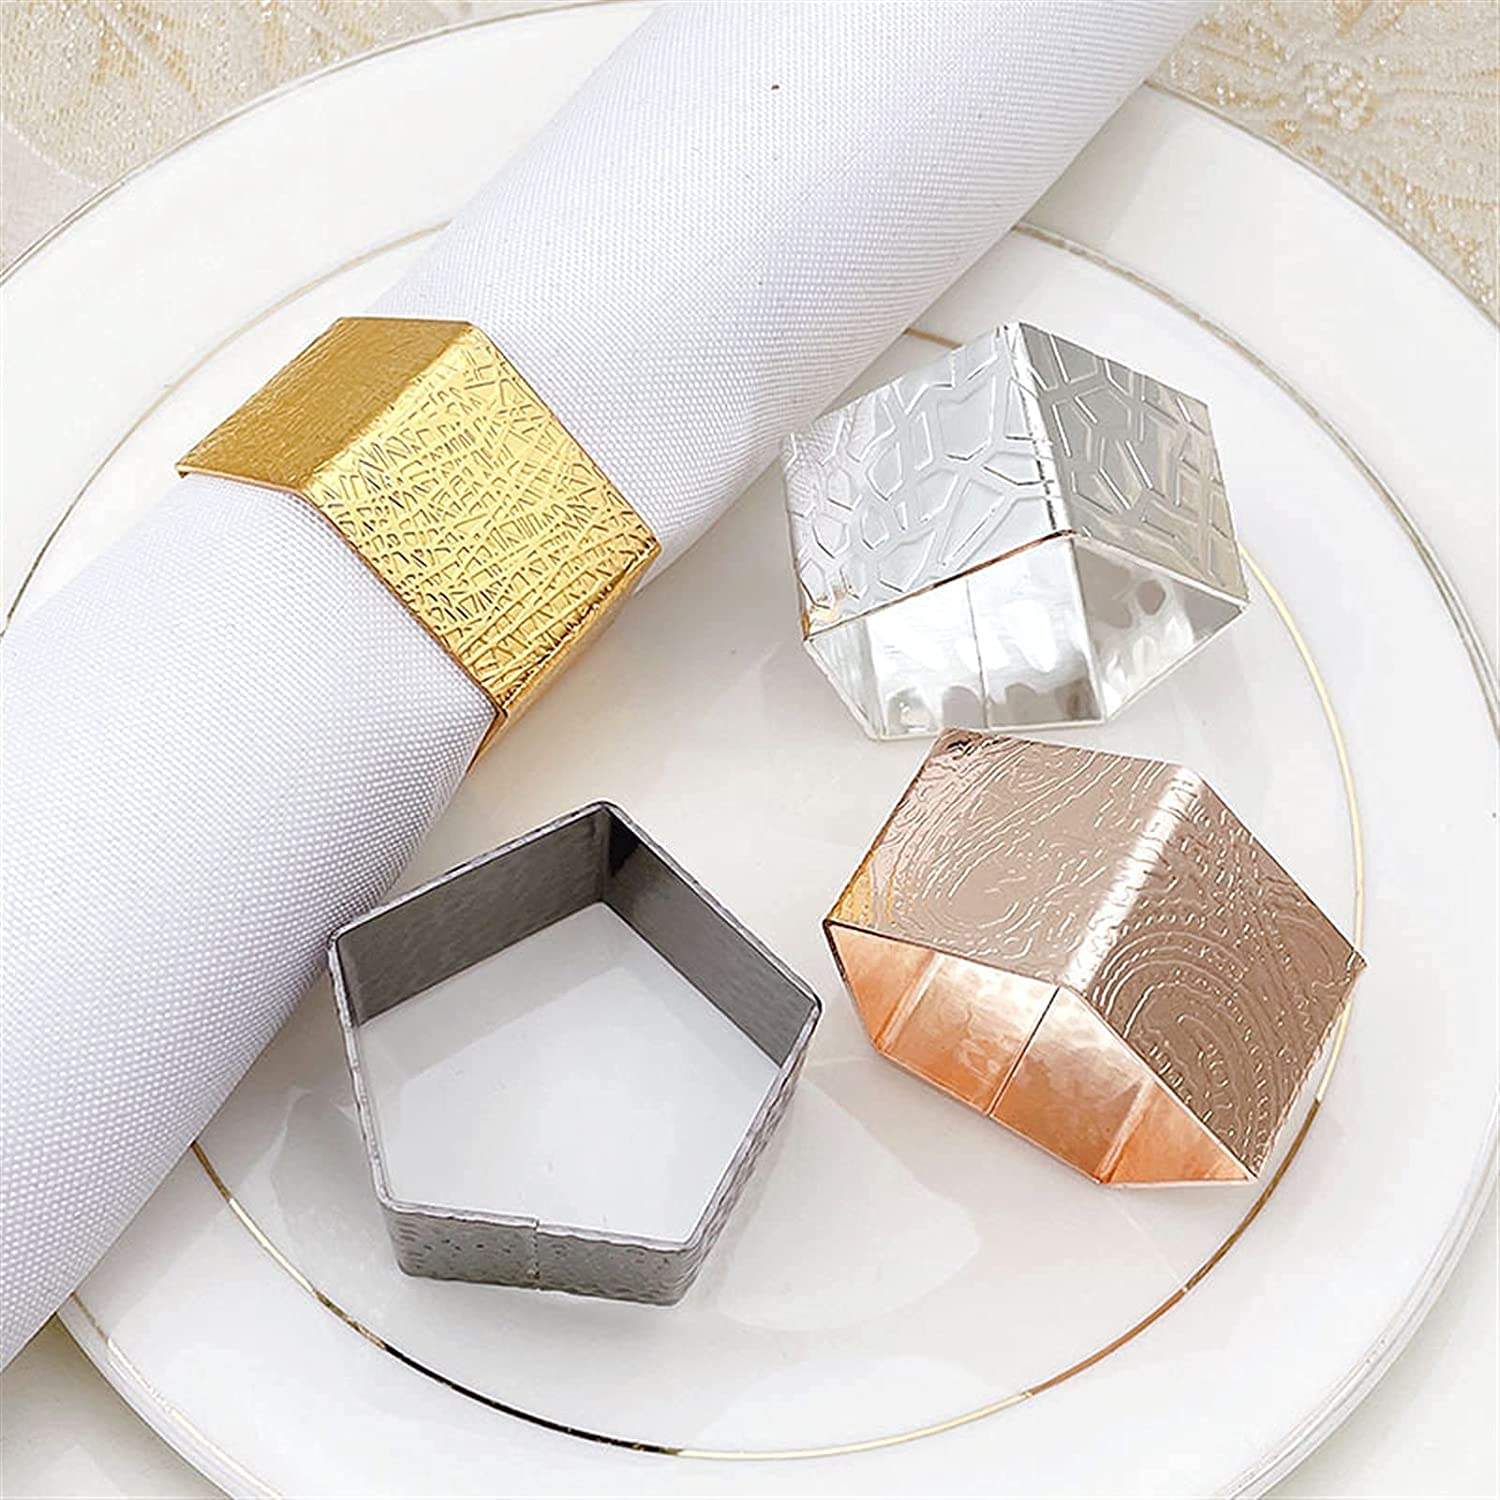 2021 spring and summer new JIAOXIAOHUI Louisville-Jefferson County Mall Creative Polygonal Napkin Ring Metal Nap